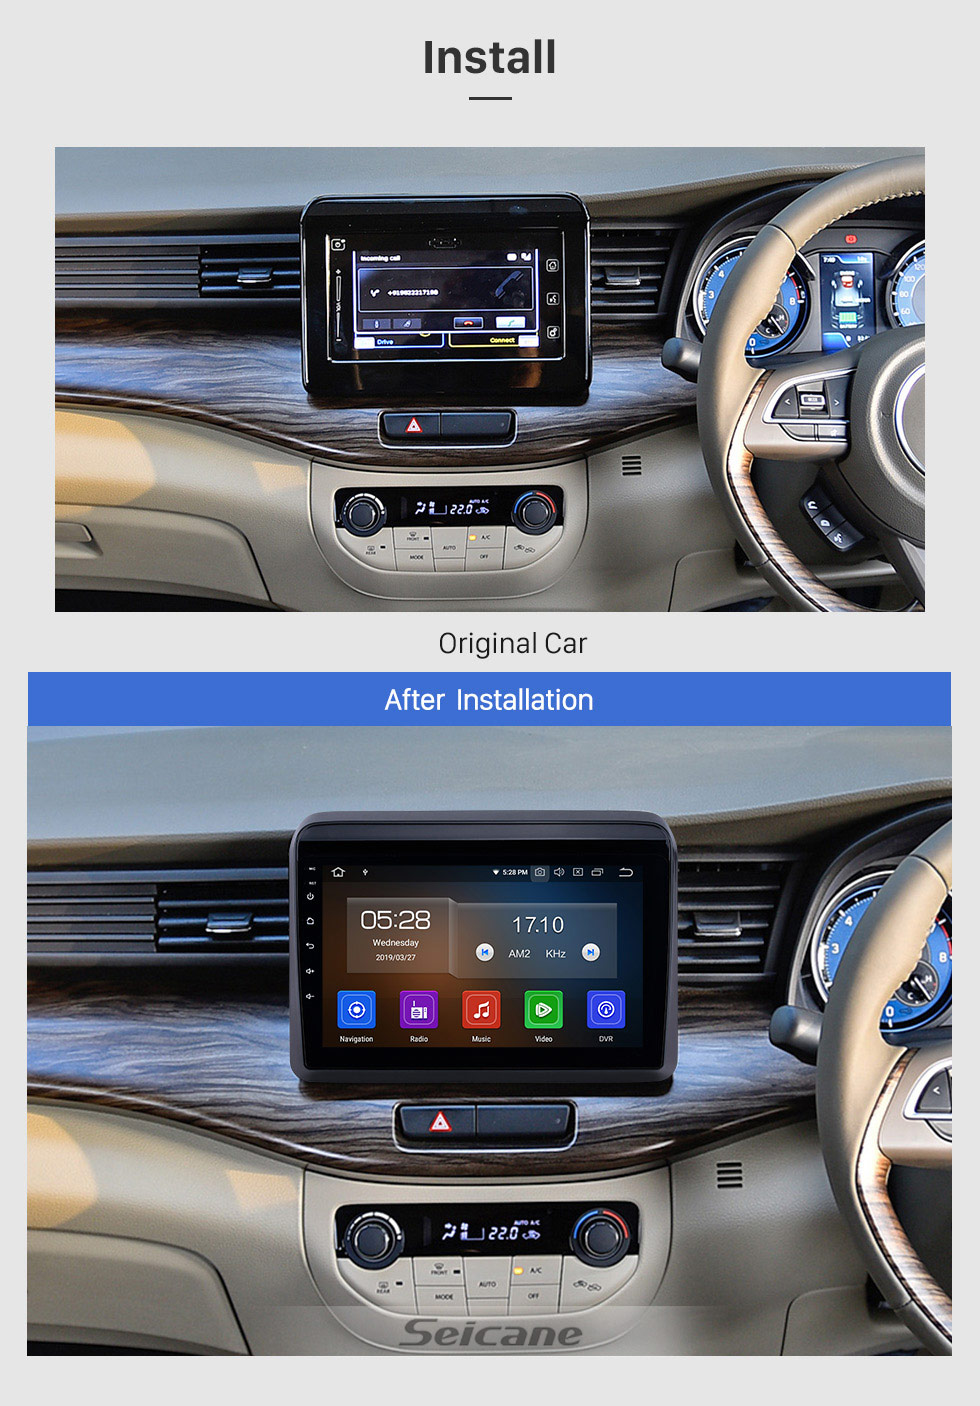 Seicane 9 inch HD Touchscreen 2018 2019 Suzuki ERTIGA Android 9.0 Radio with GPS Navigation System WIFI USB Bluetooth Mirror Link support Backup Camera DVR 1080p DVD Player TPMS